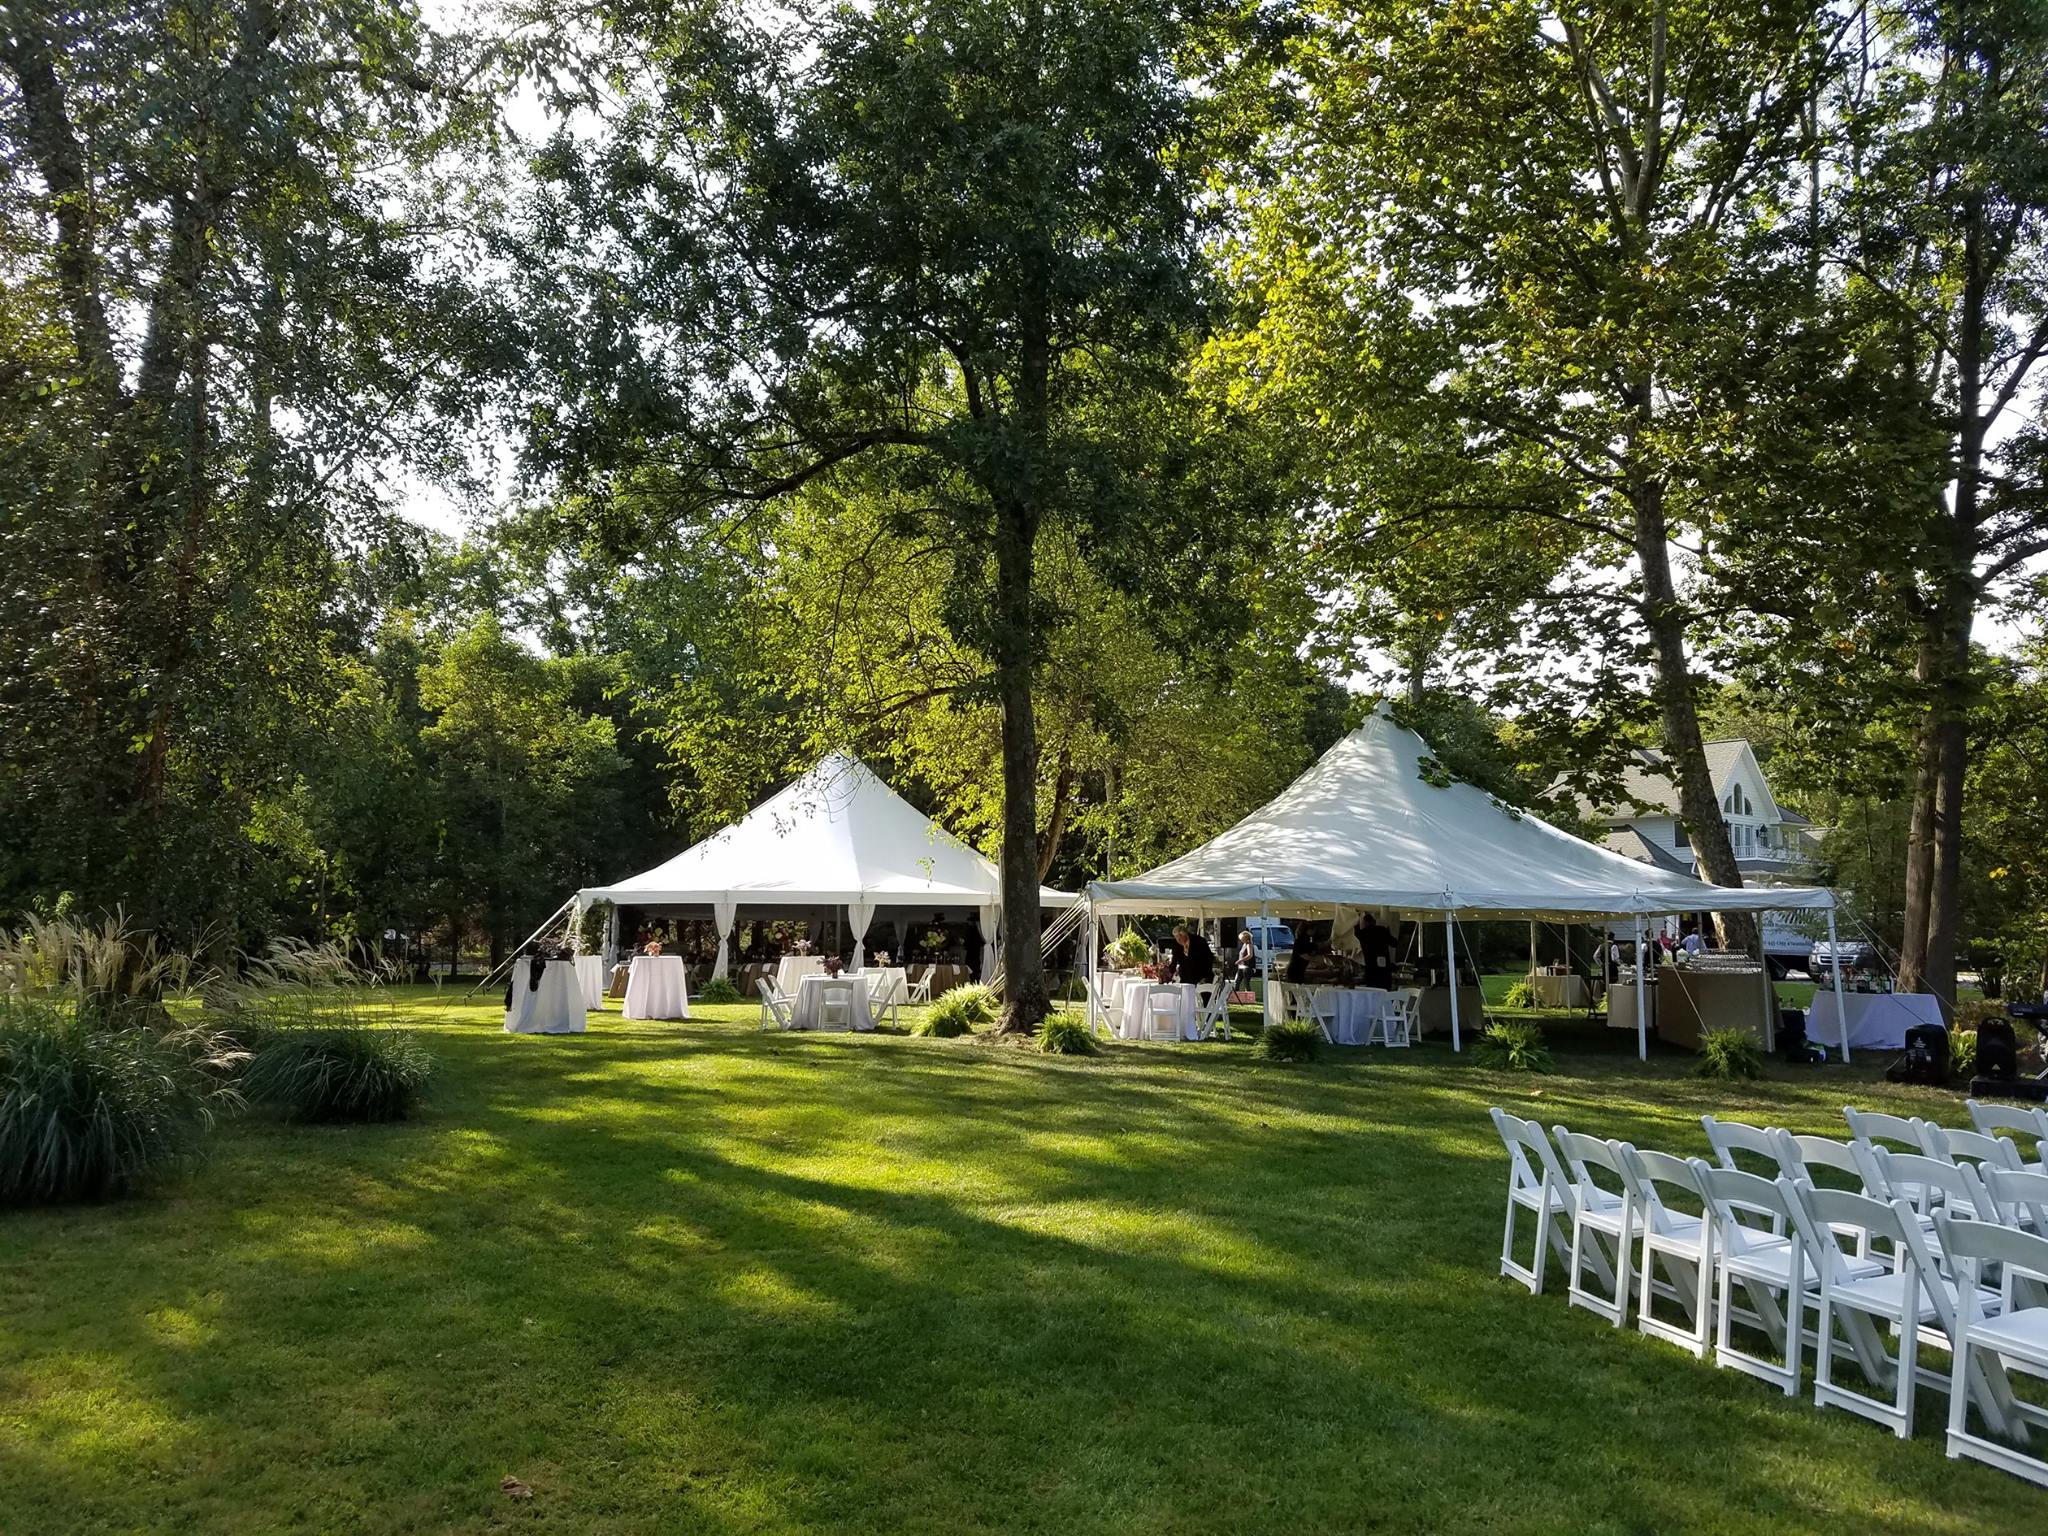 Multi-tent wedding